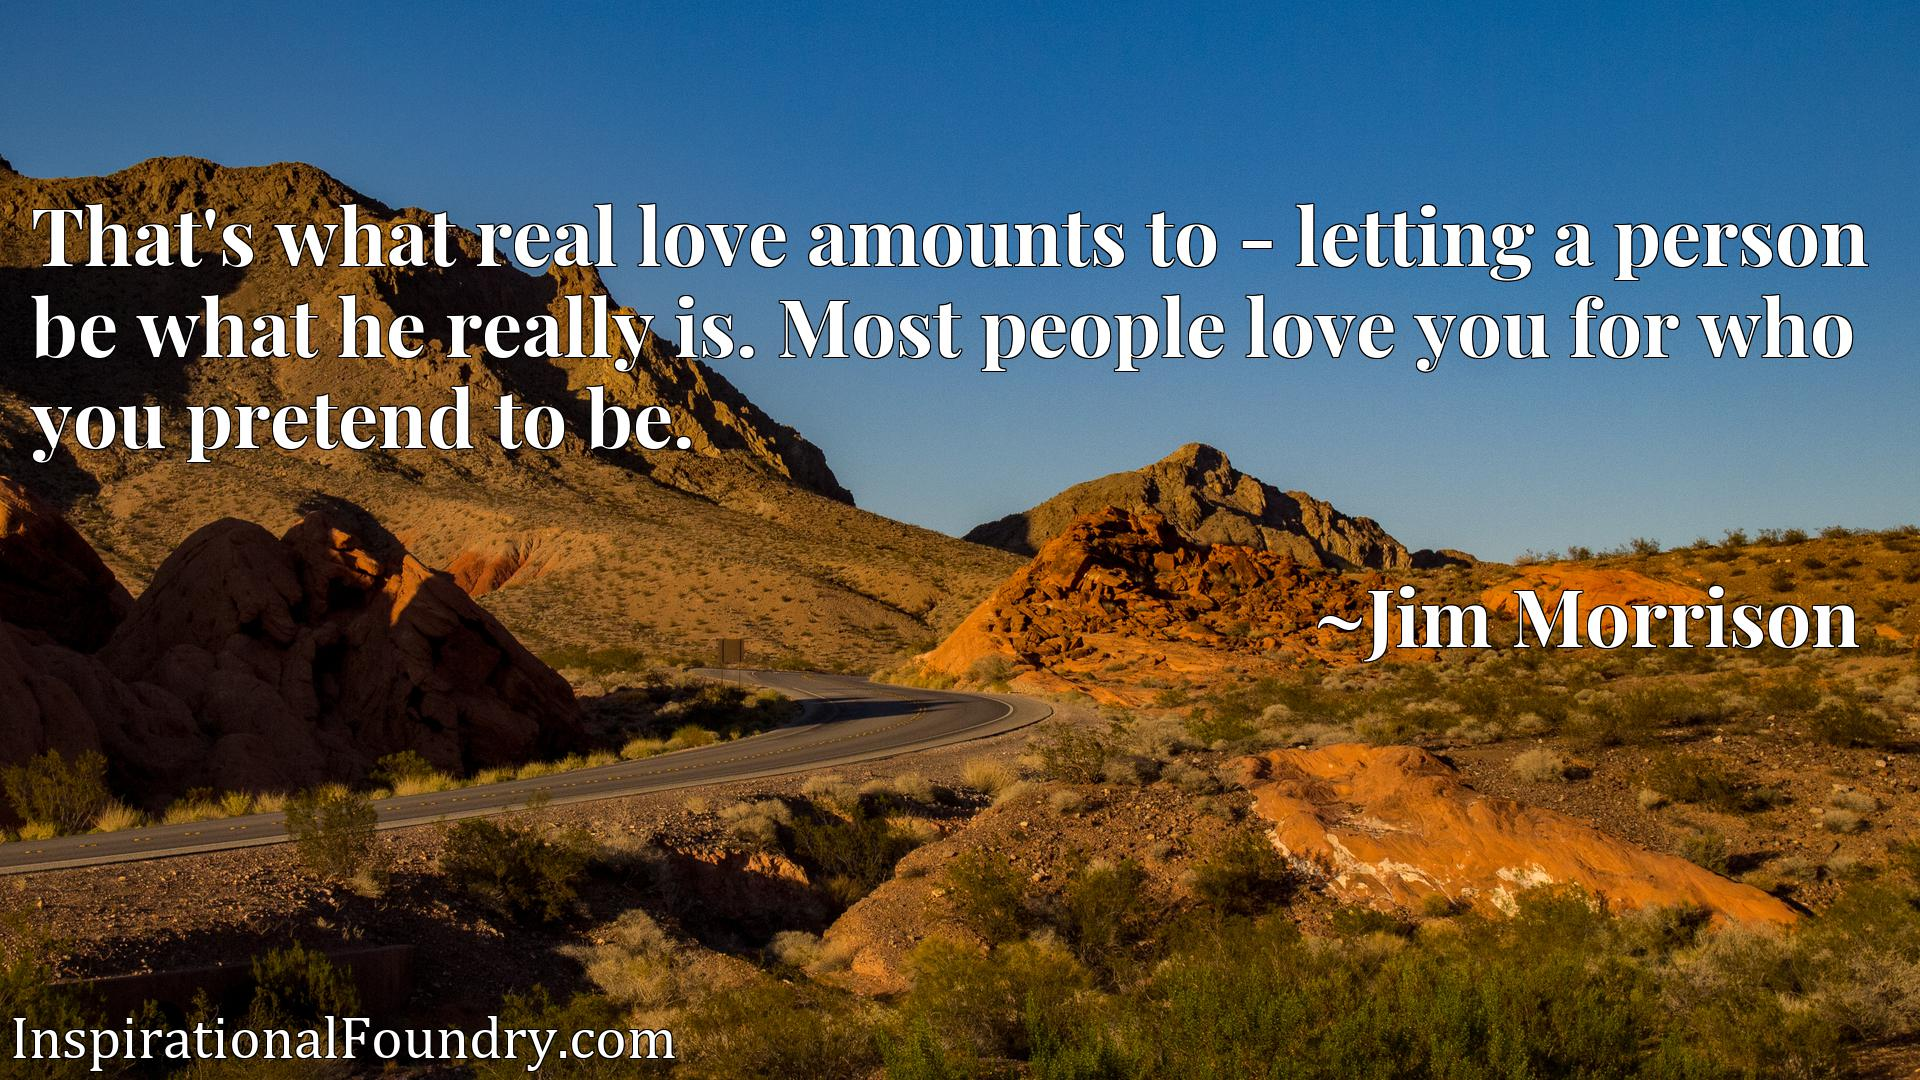 That's what real love amounts to - letting a person be what he really is. Most people love you for who you pretend to be.